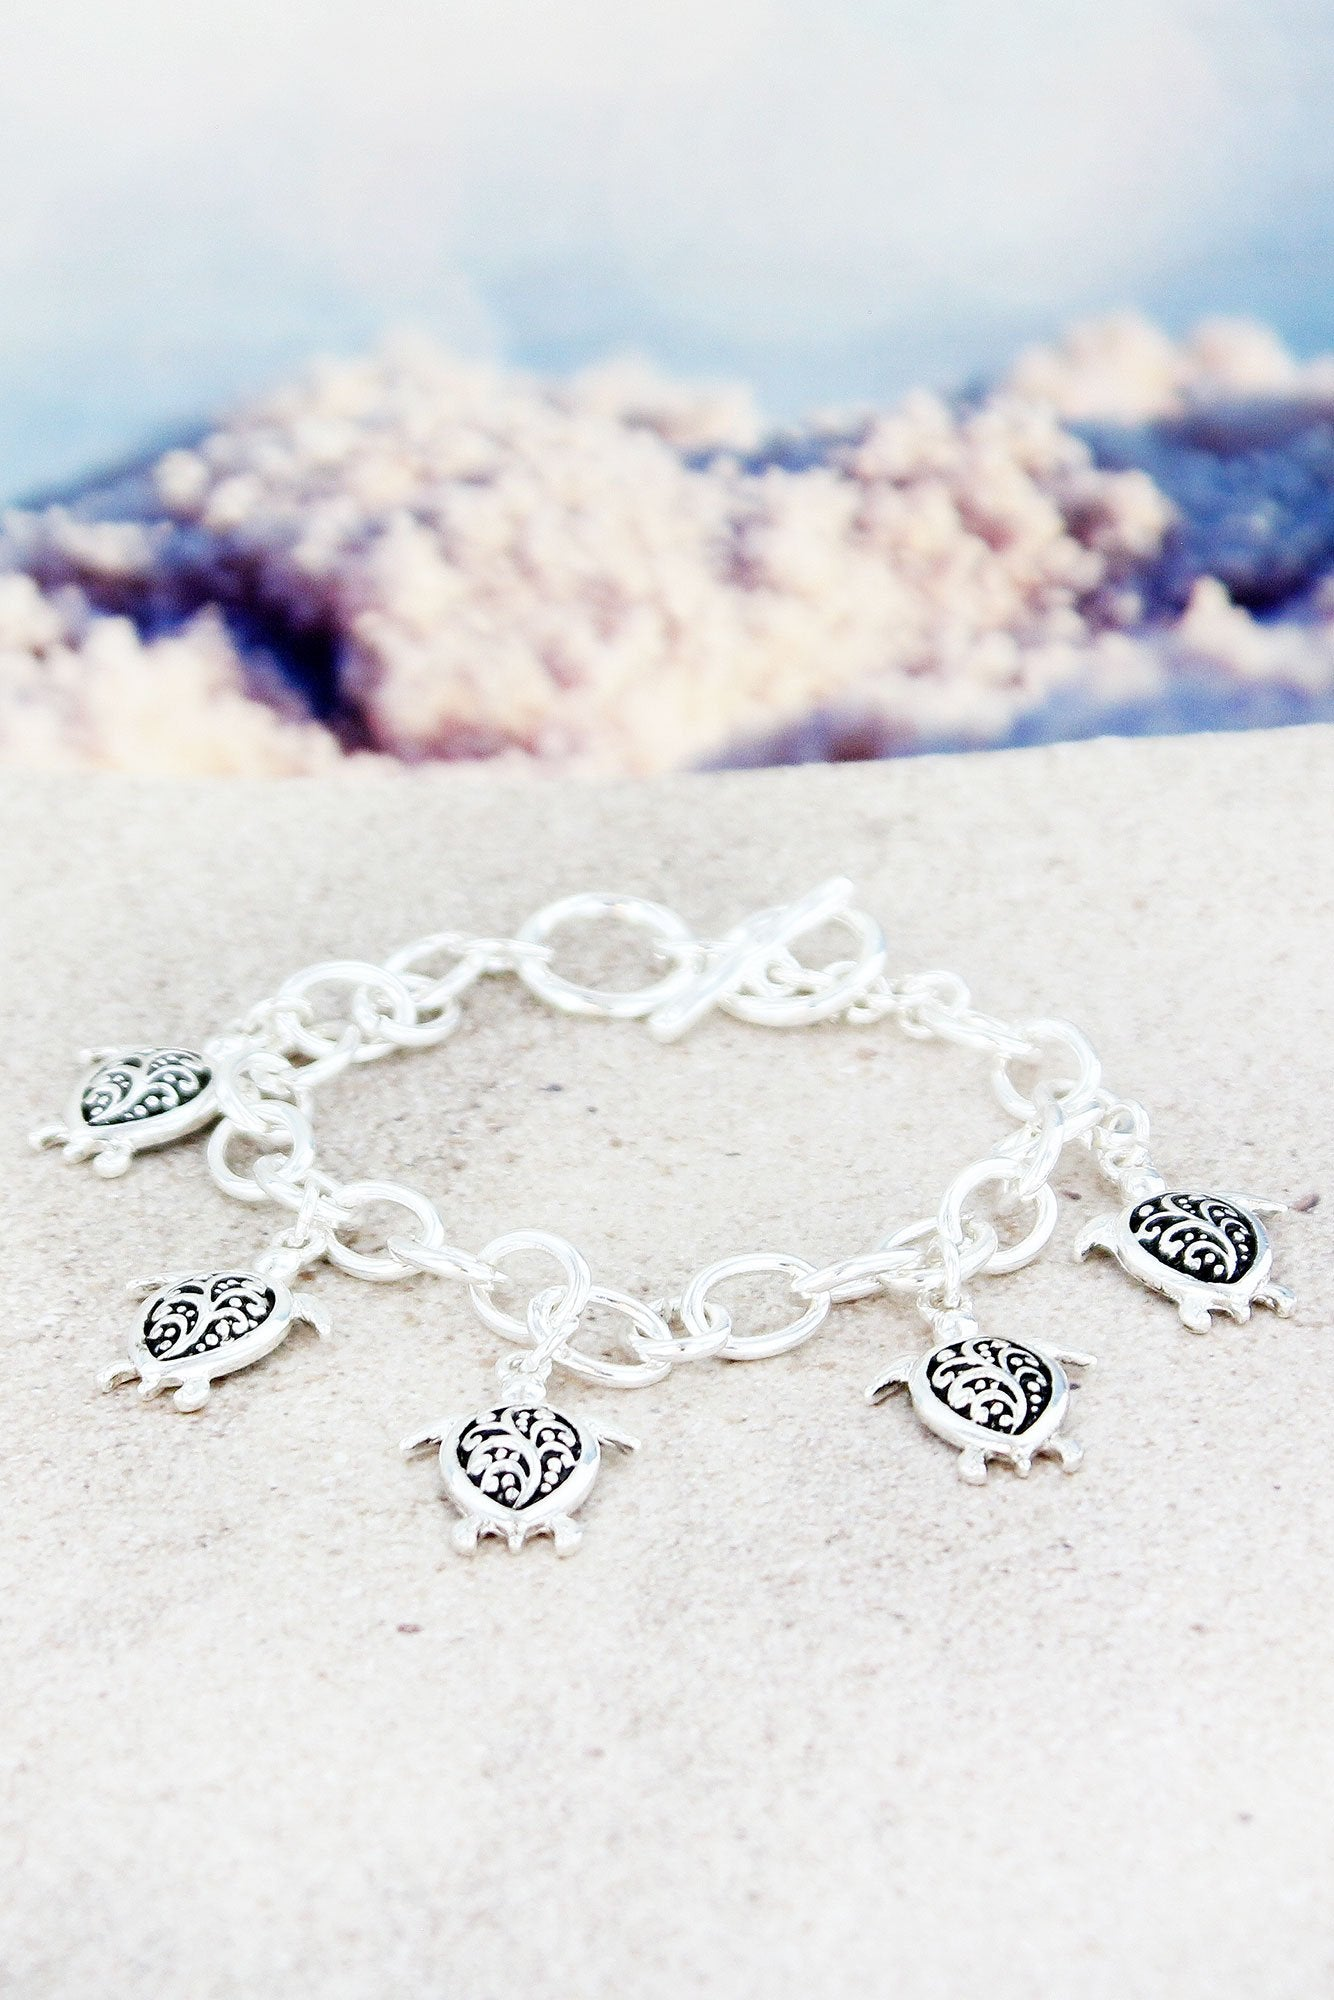 SALE! Silvertone Scroll Turtle Charm Toggle Bracelet